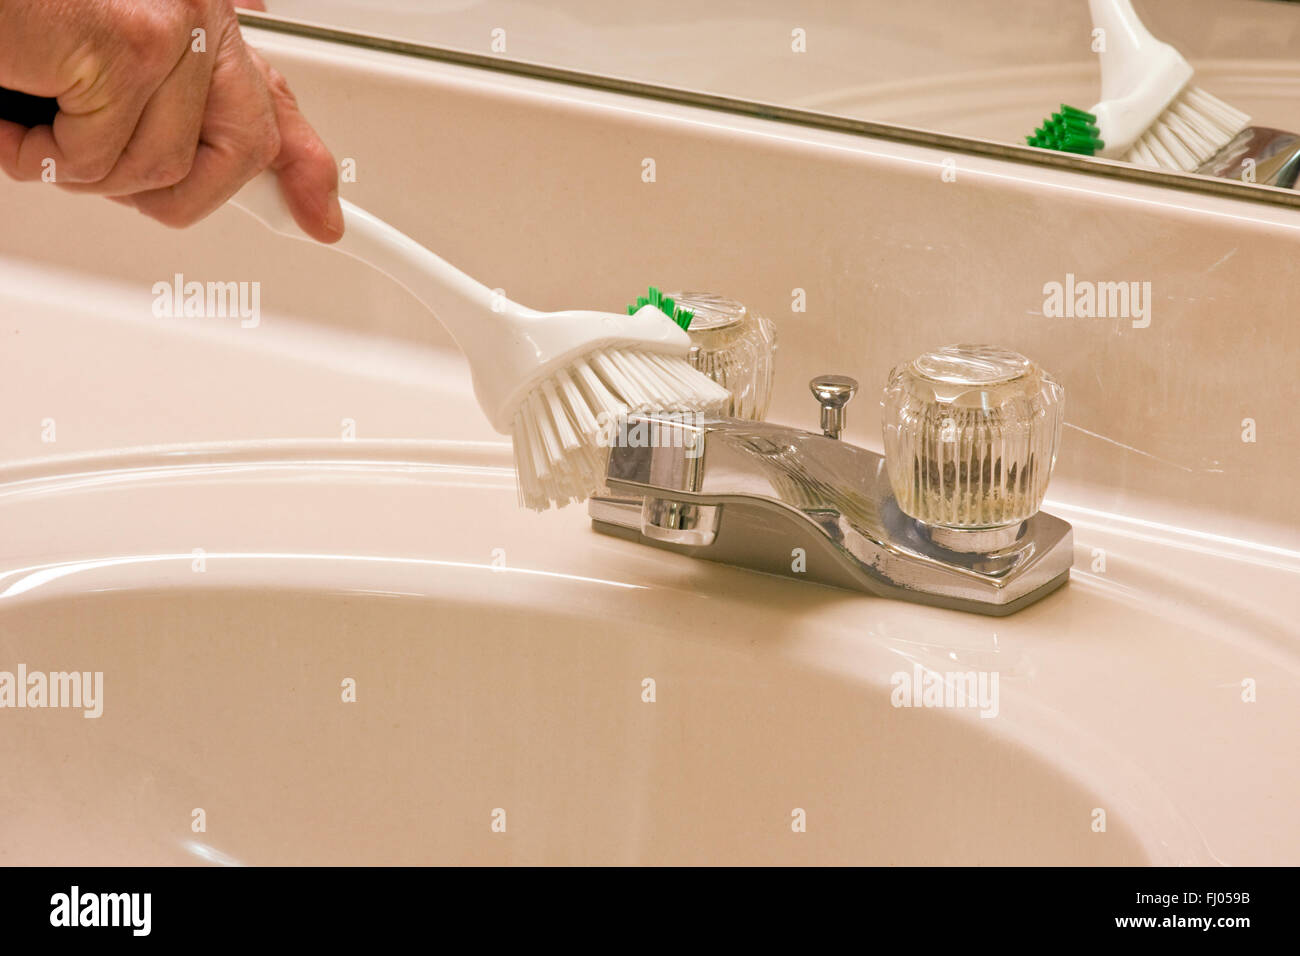 bathroom sink being cleaned with a scrub brush - Stock Image